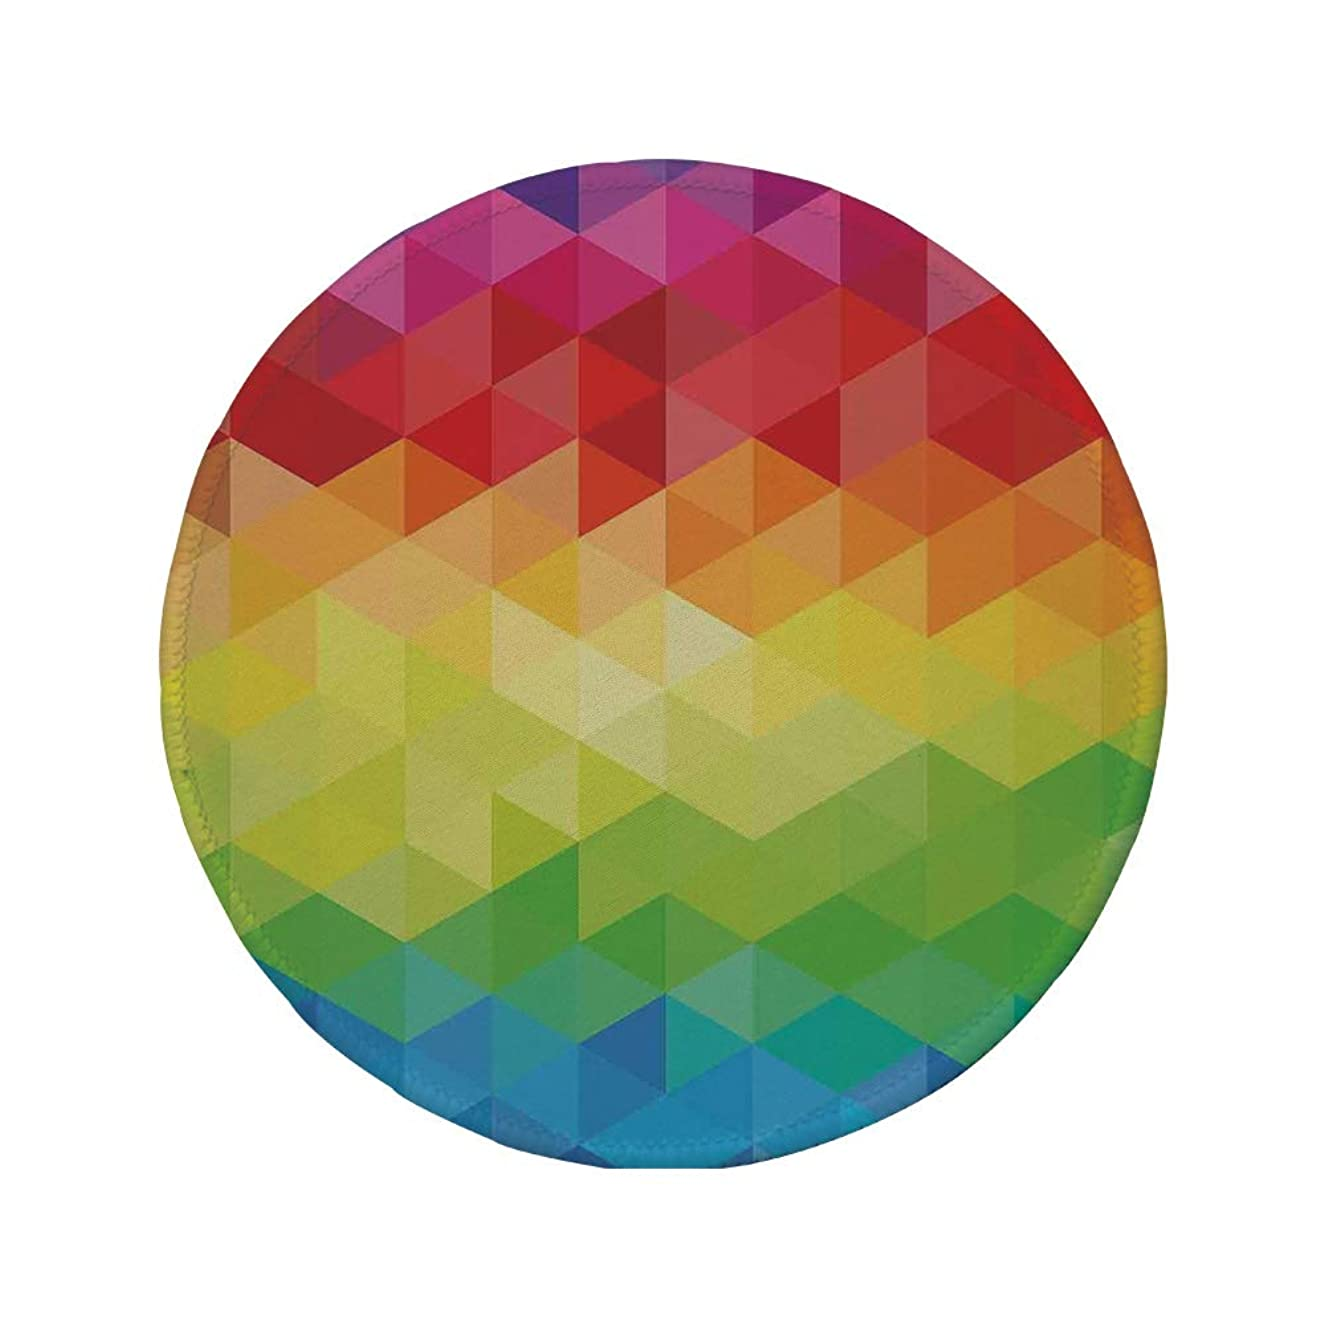 Non-Slip Rubber Round Mouse Pad,Colorful Home Decor,Geometrical Polygonal Diamond Forms with Triangle Mirroring Lines Artwork,Multi,11.8